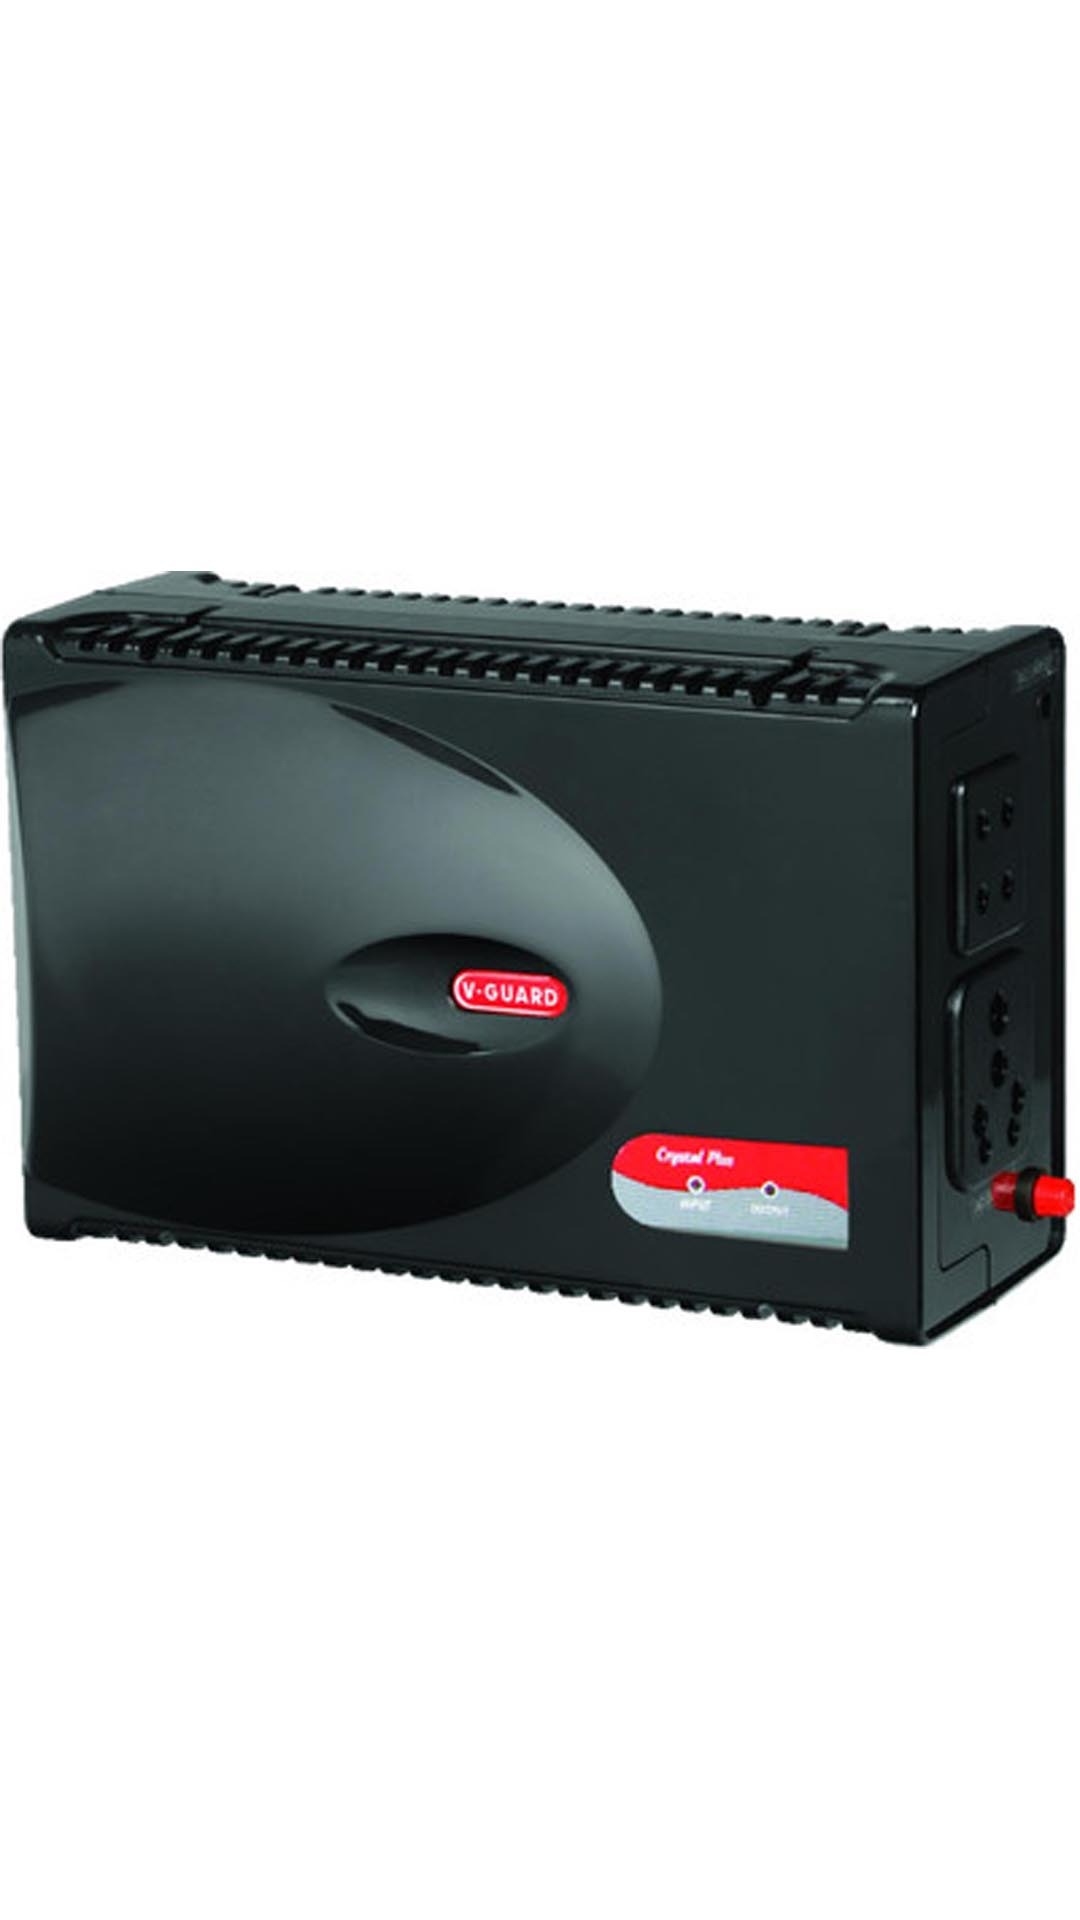 v-guard crystal plus voltage stabilizer (black)